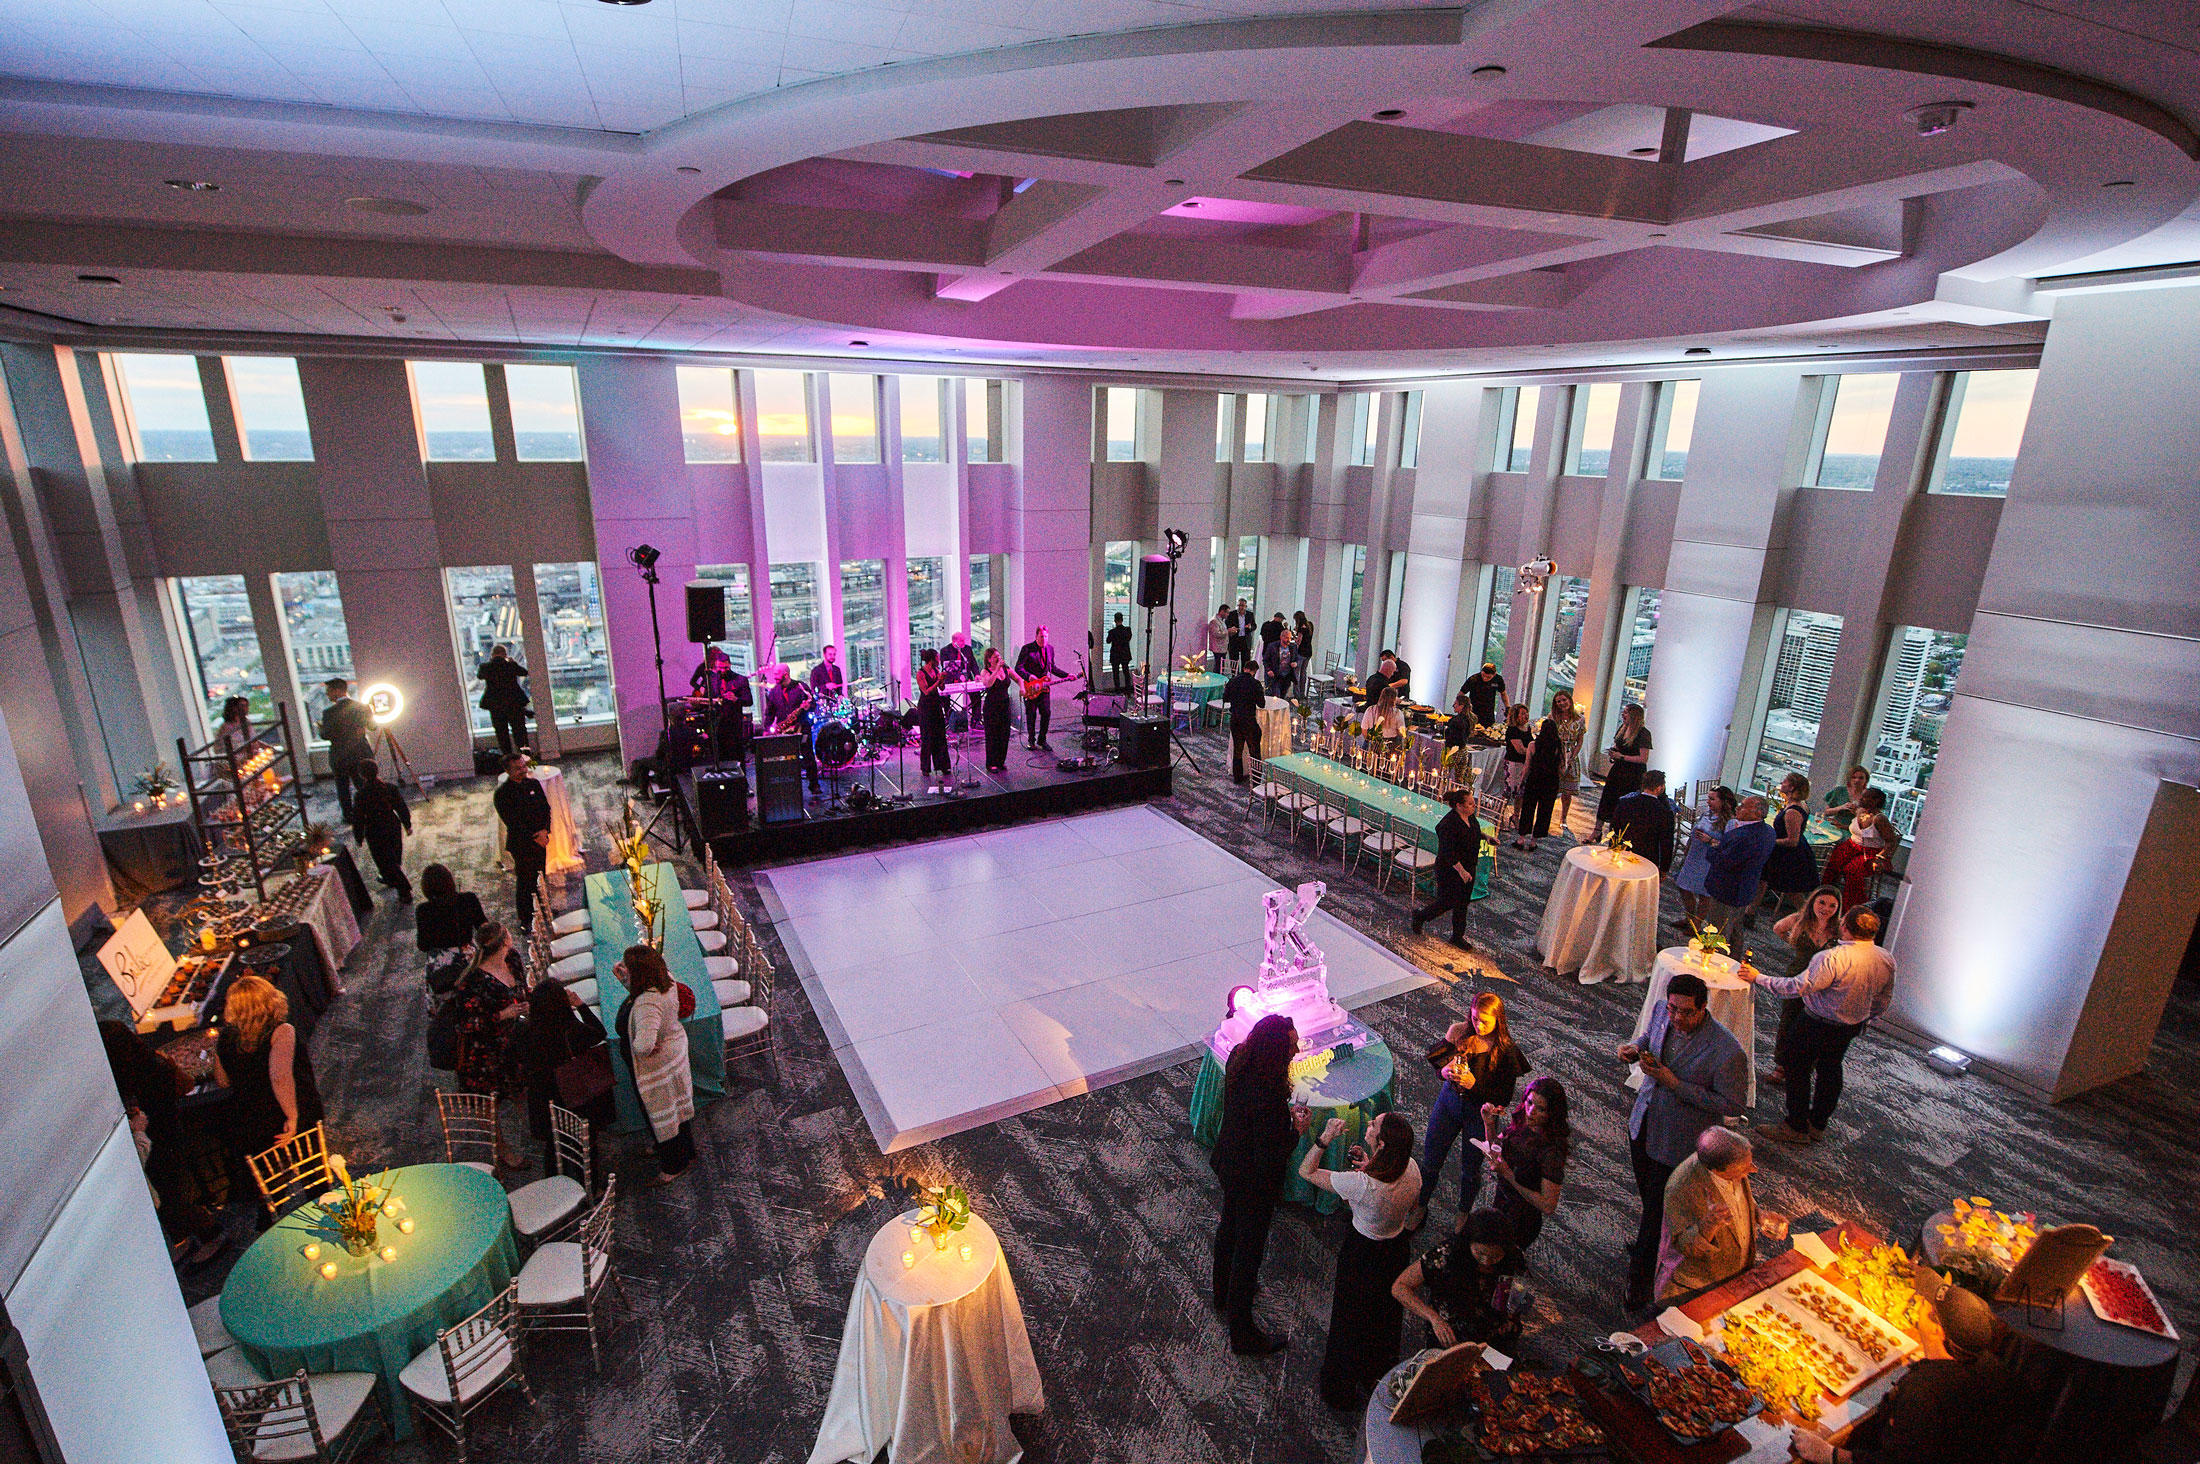 Special Events - VUE on 50 can accommodate groups of up to 500 people for any celebration or special event including:Bar and Bat MitzvahsMilestone CelebrationsGraduation PartiesAnniversary PartiesHoliday PartiesBlack Tie GalasNon Profit FundraisersMilitary Ballsand more…